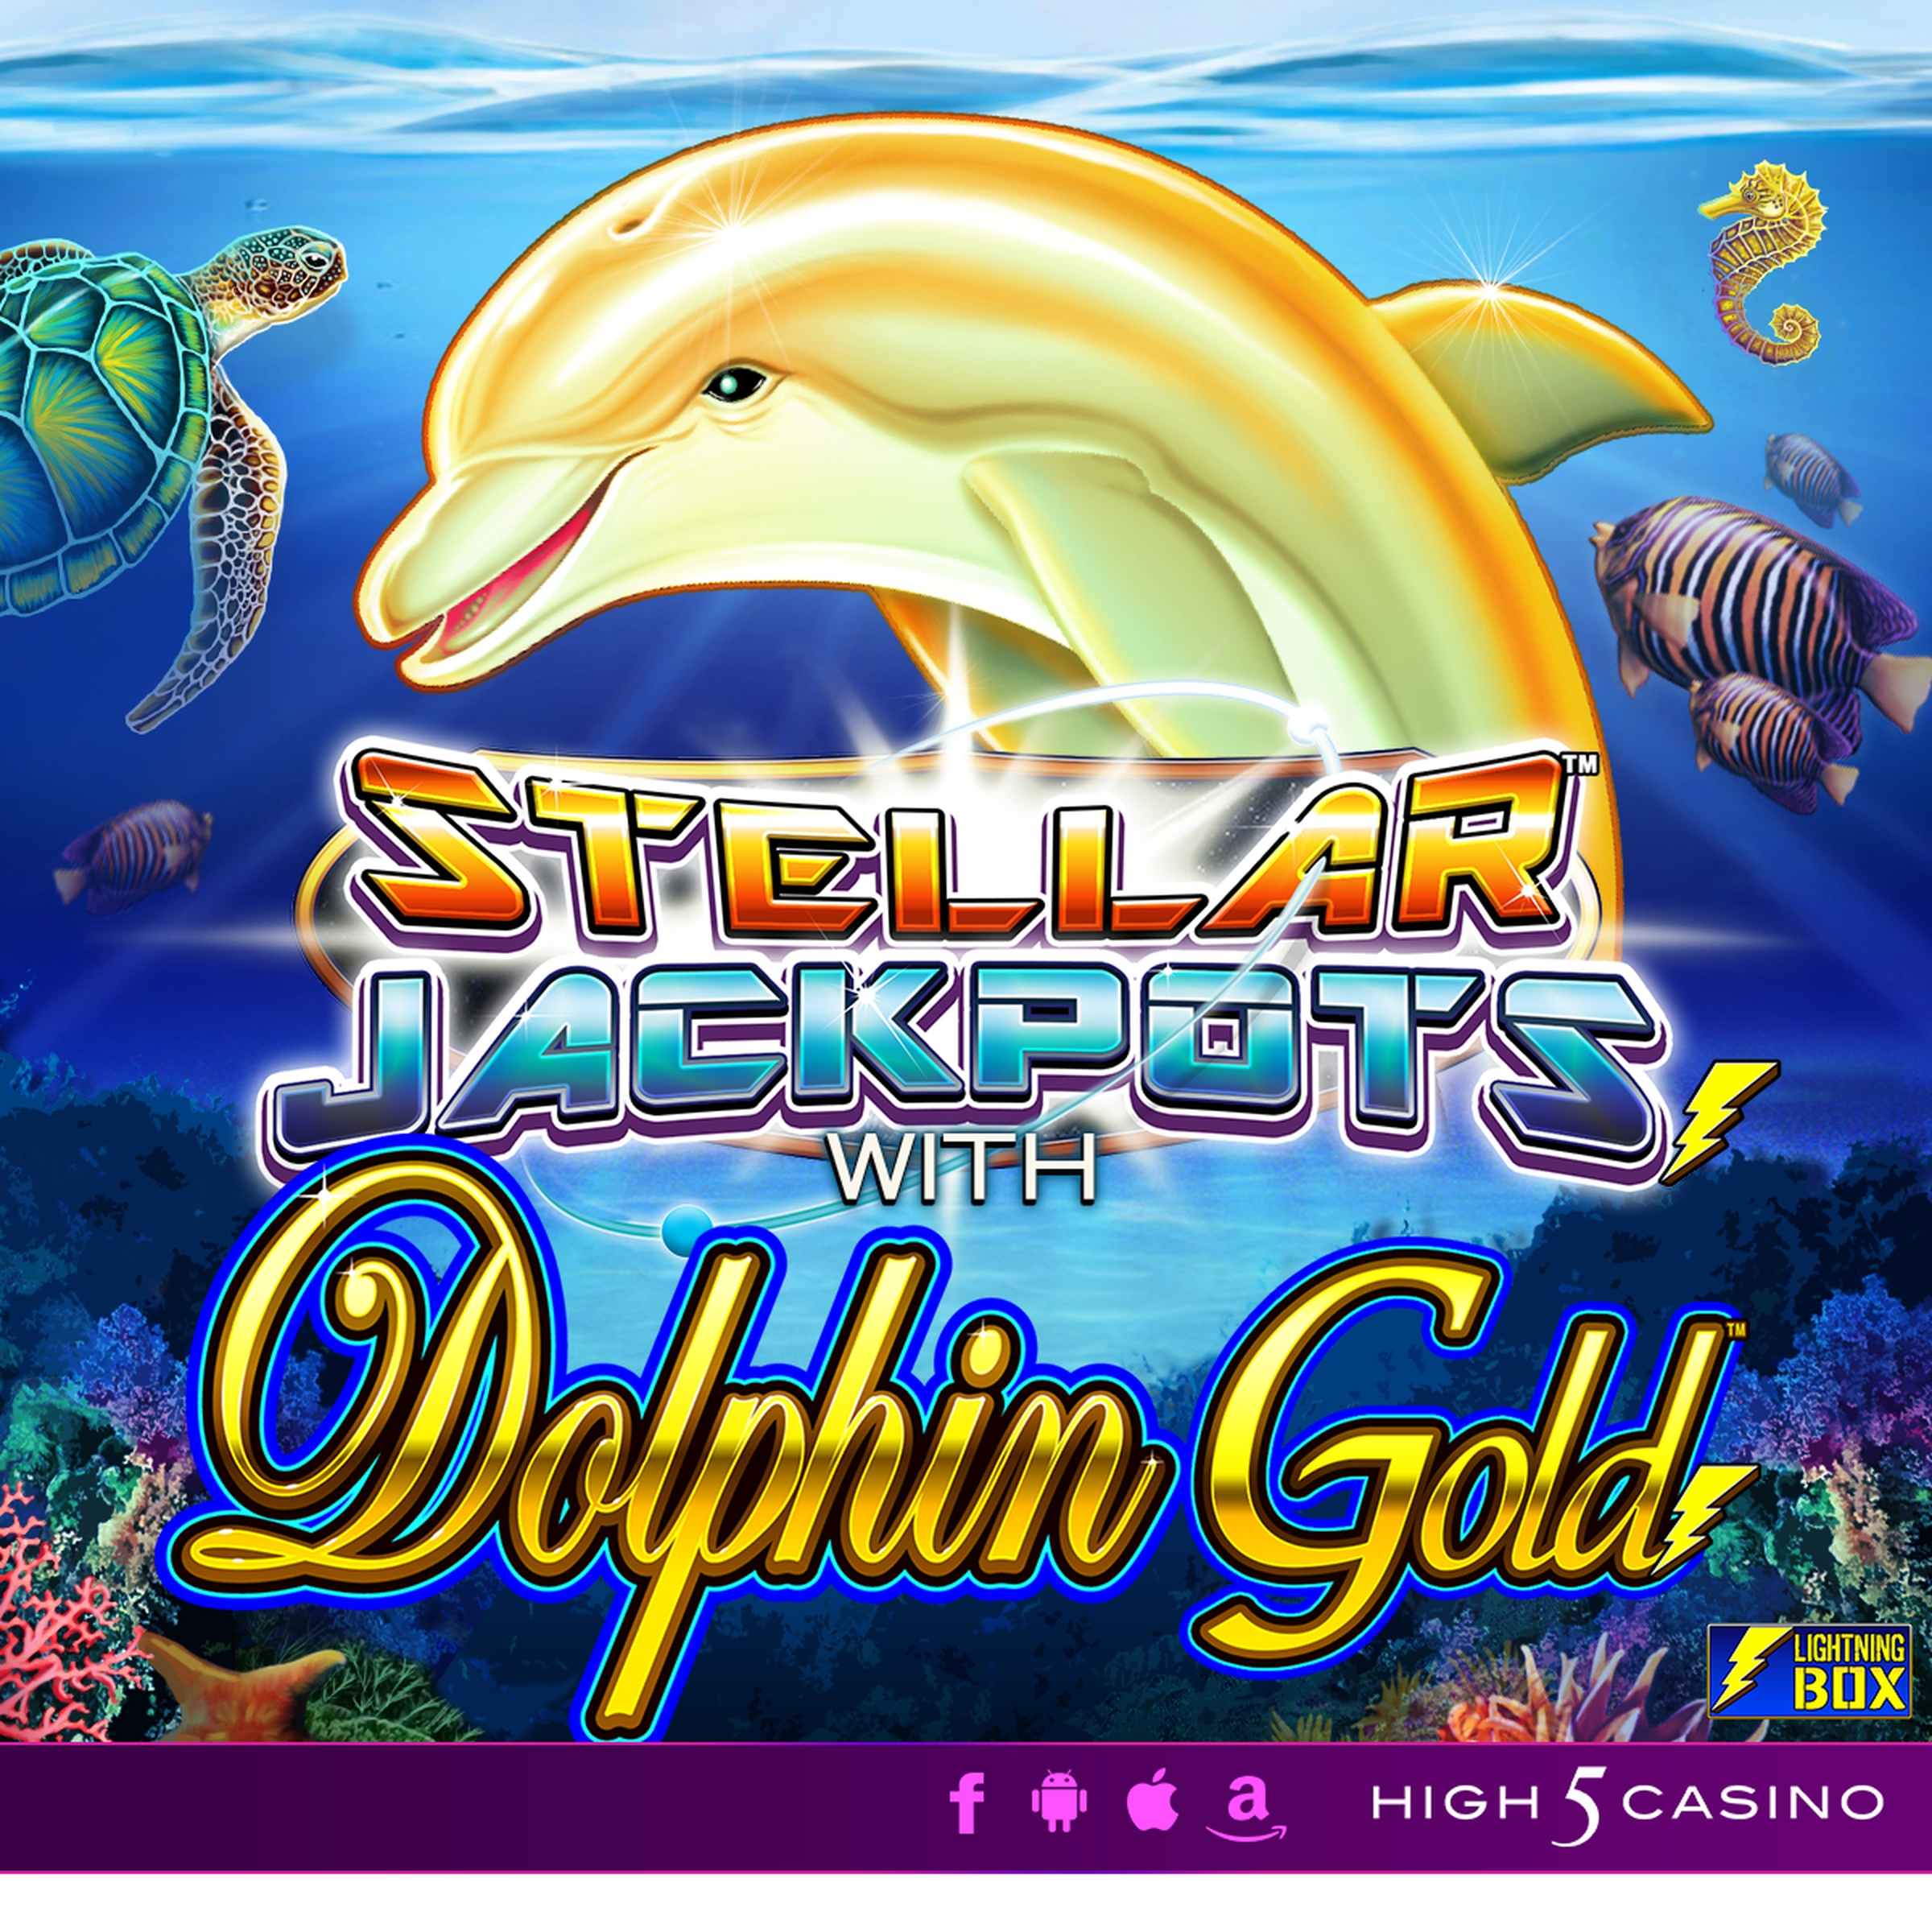 The Dolphin Gold with Stellar Jackpots Online Slot Demo Game by Lightning Box